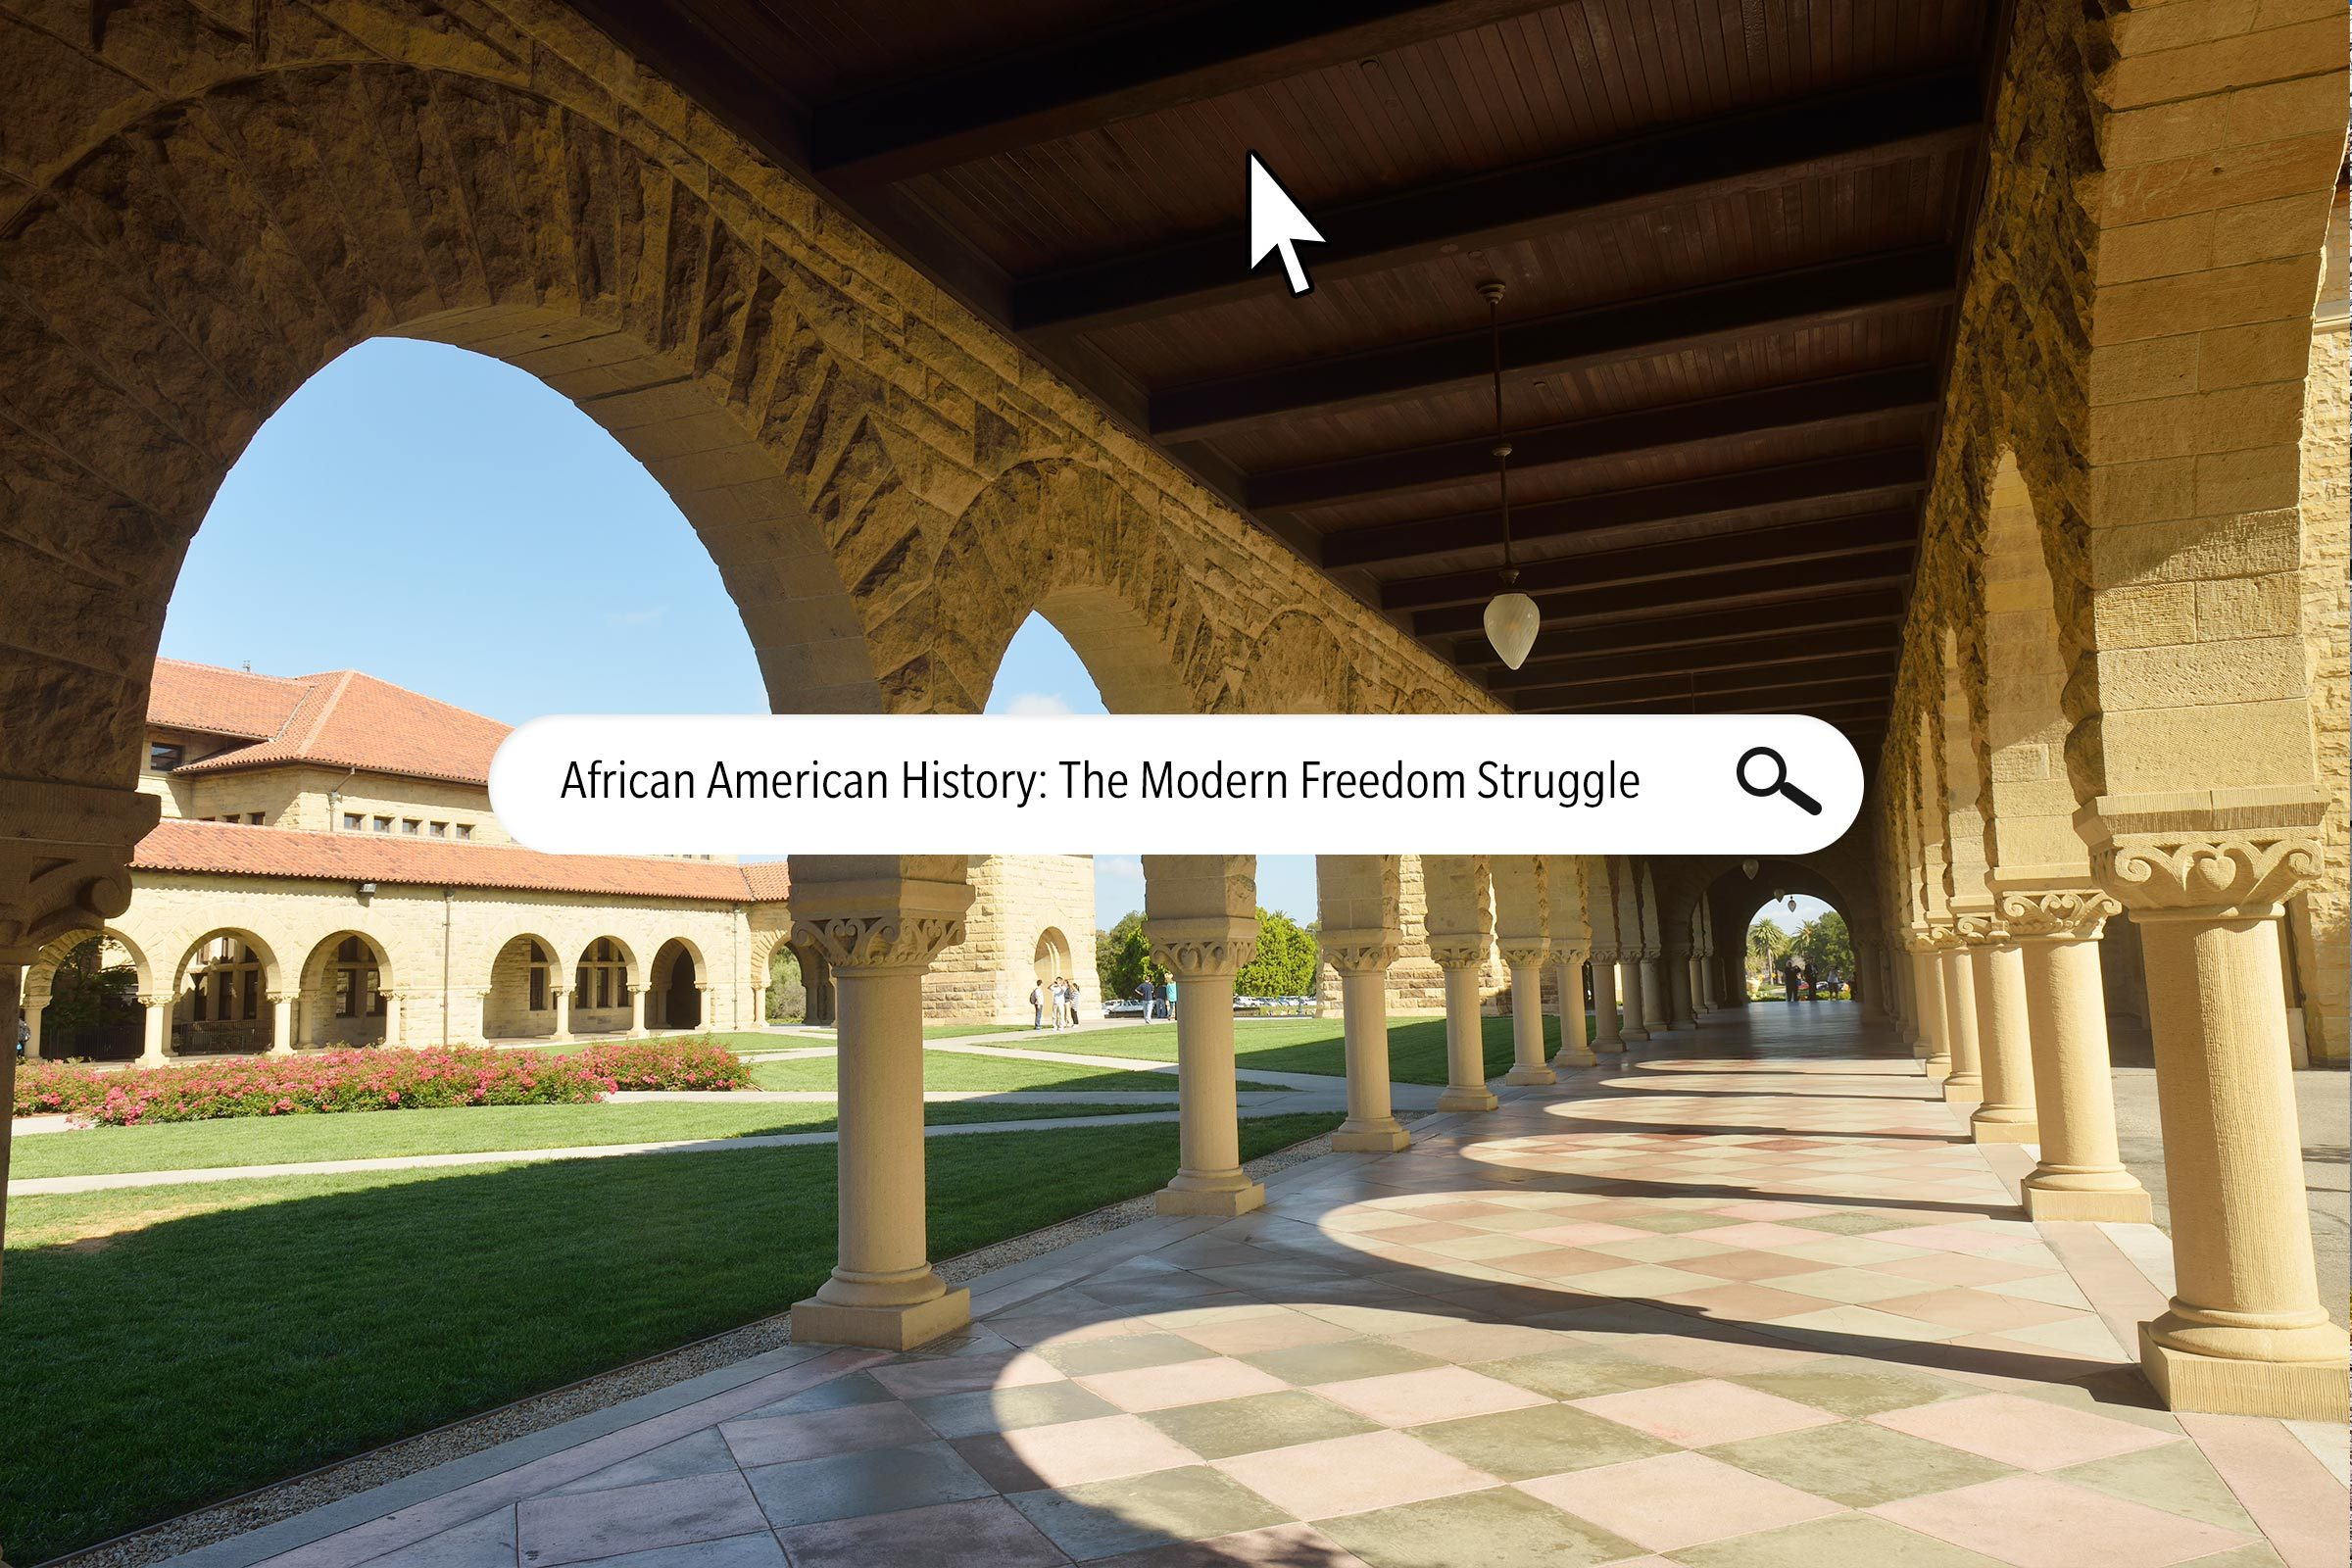 African American History: The Modern Freedom Struggle (Stanford University)